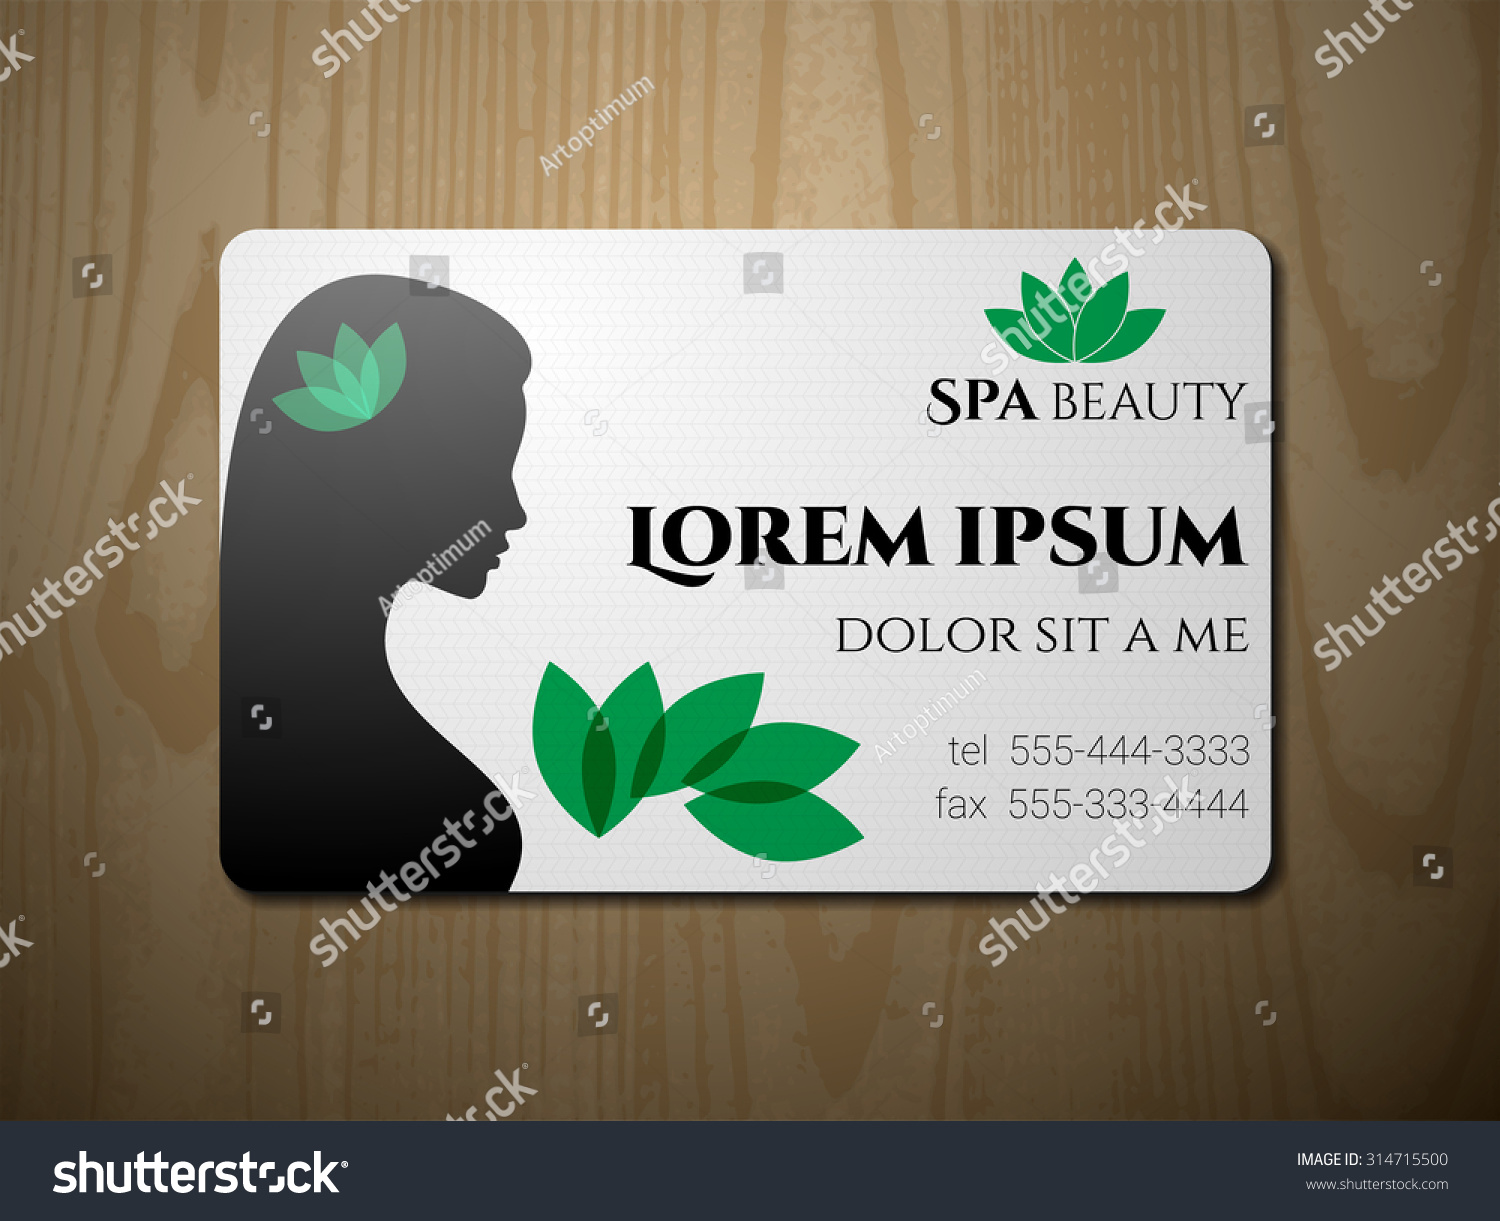 Arte Salon And Spa Business Card Spa Salon Stock Vector Royalty Free 314715500